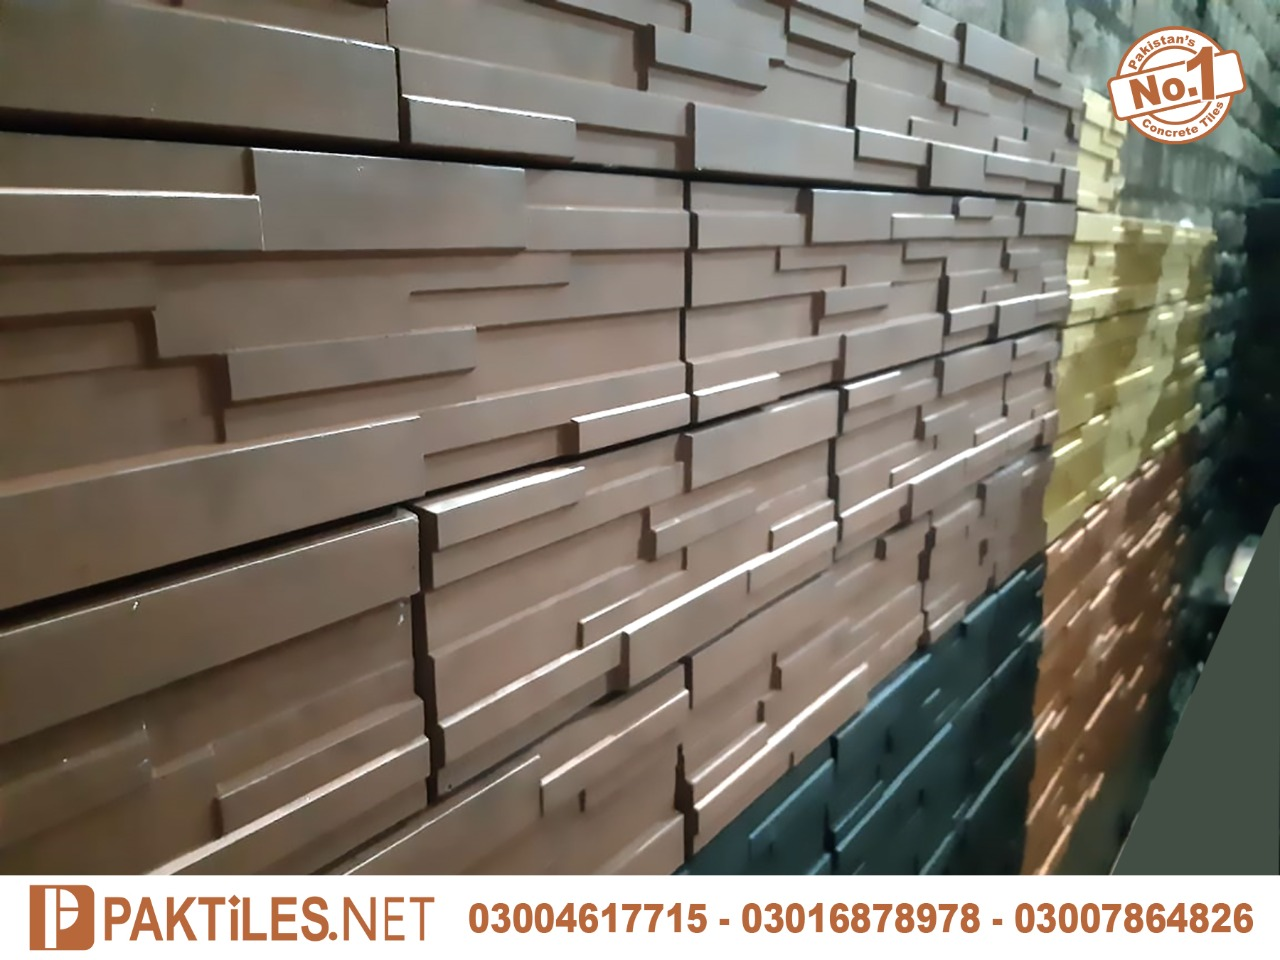 House front elevation exterior wall tiles design in pakistan